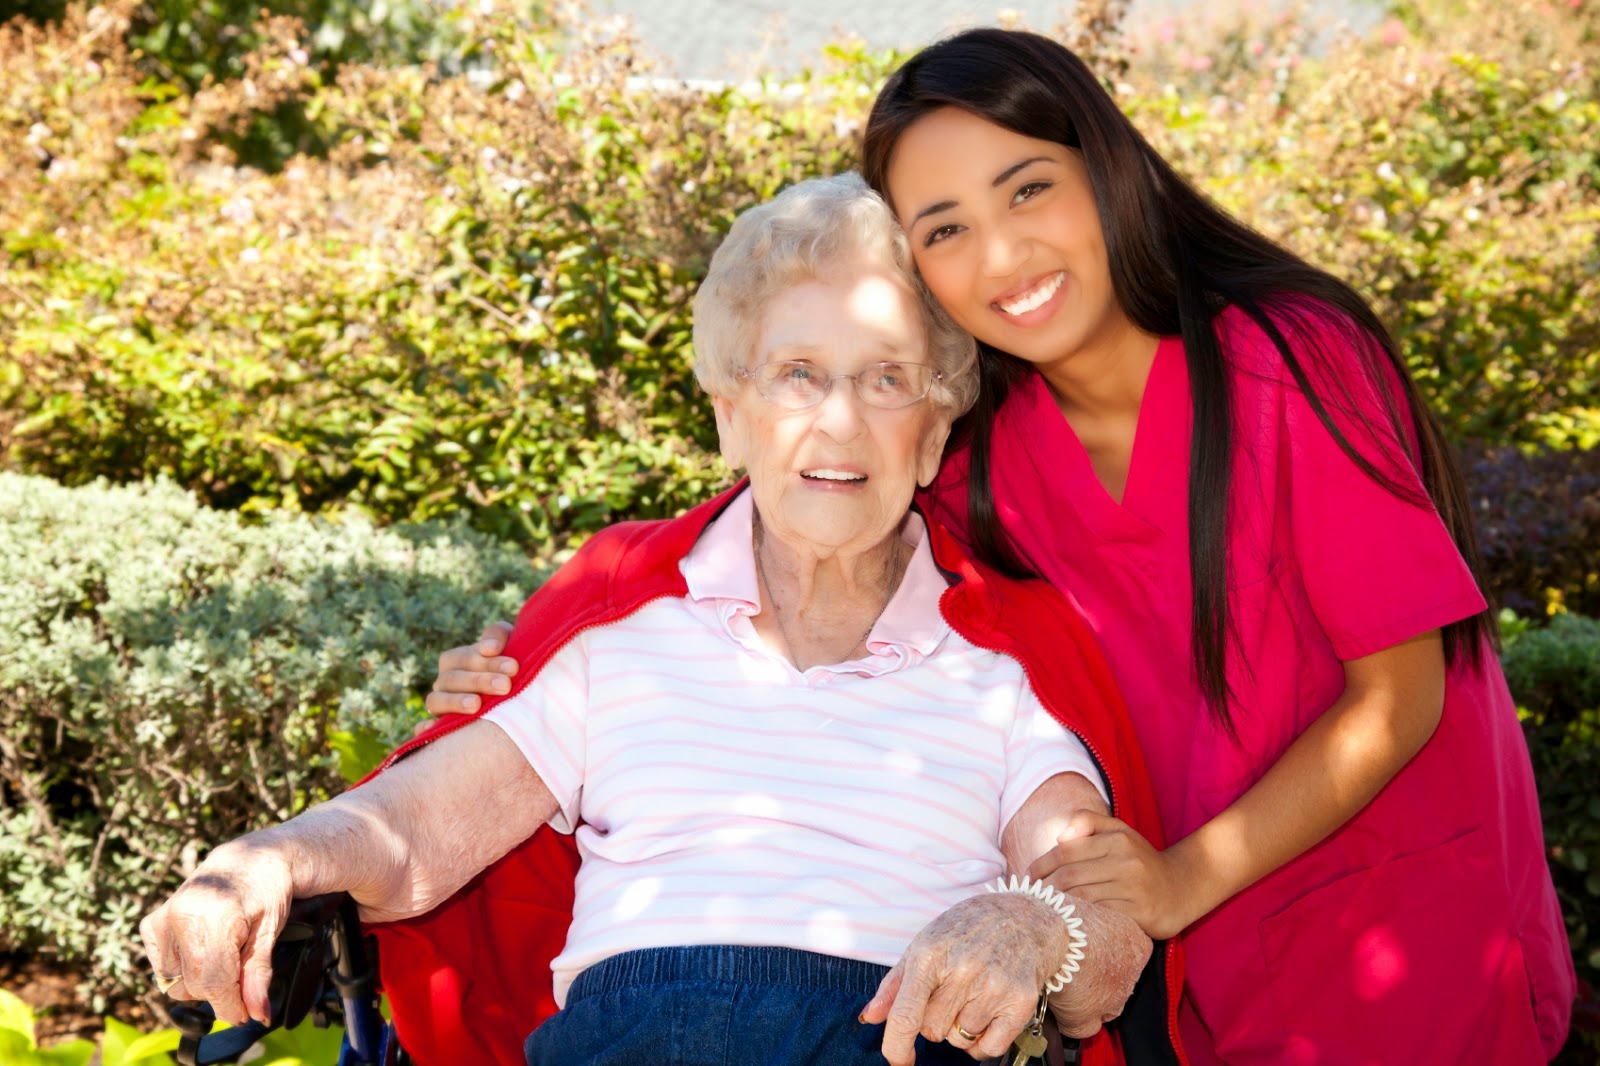 Canada will admit 17,500 permanent residents through the Live-in Caregiver Program